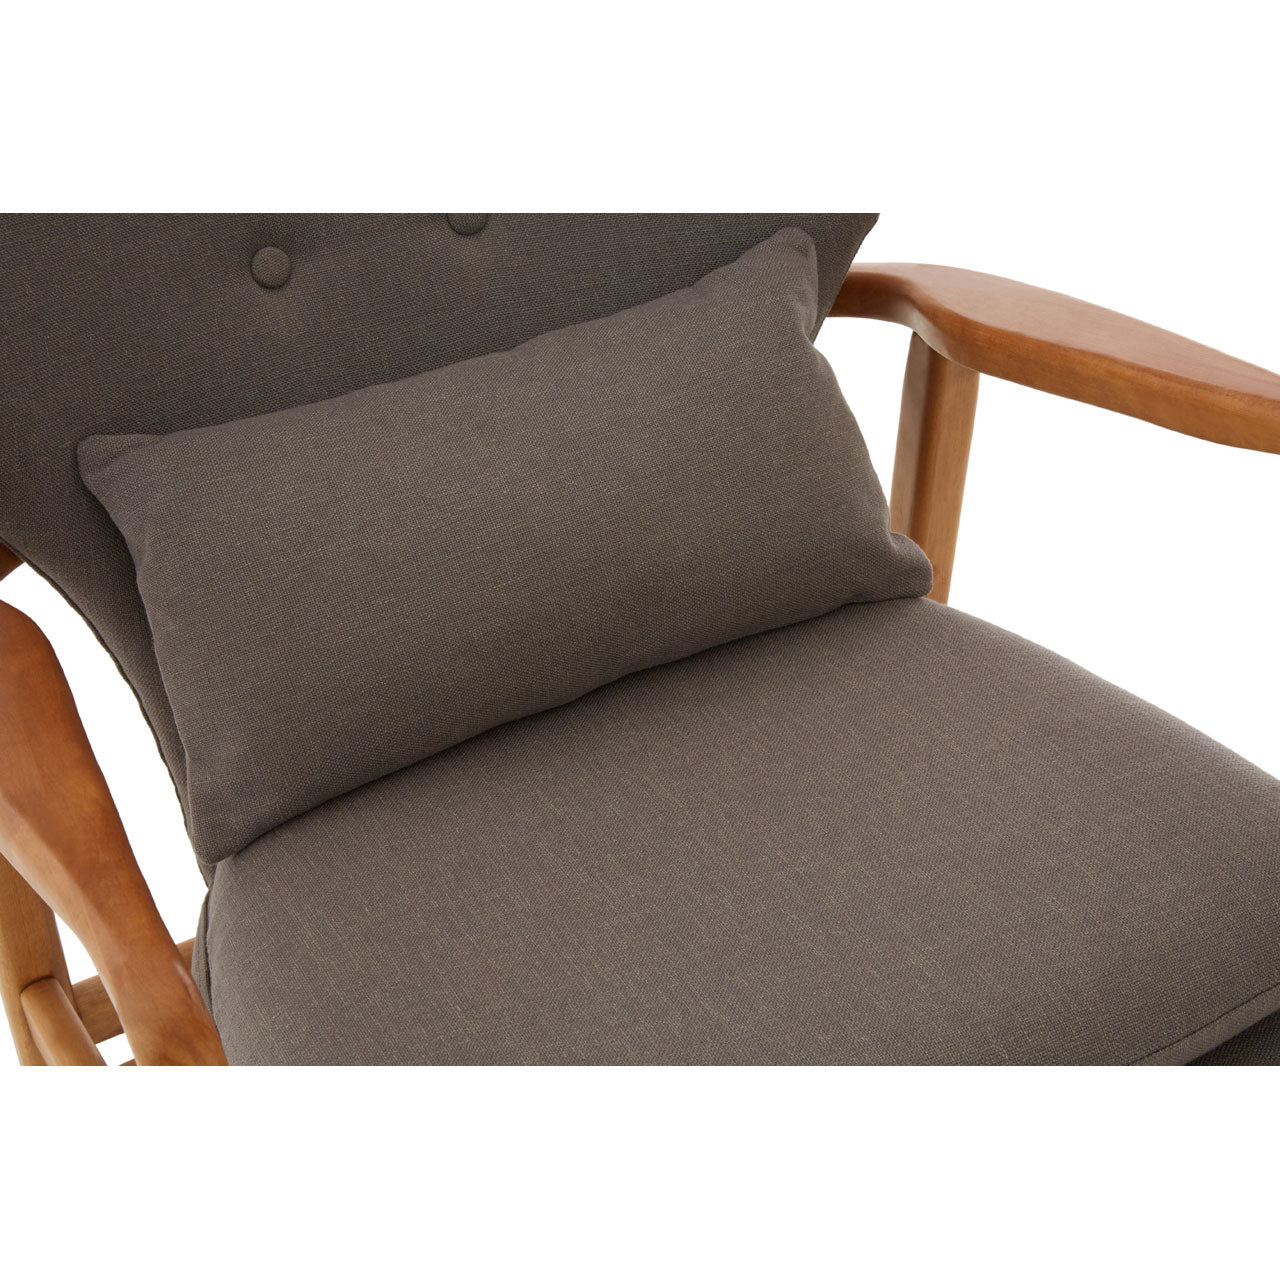 Stockholm Chair in Grey